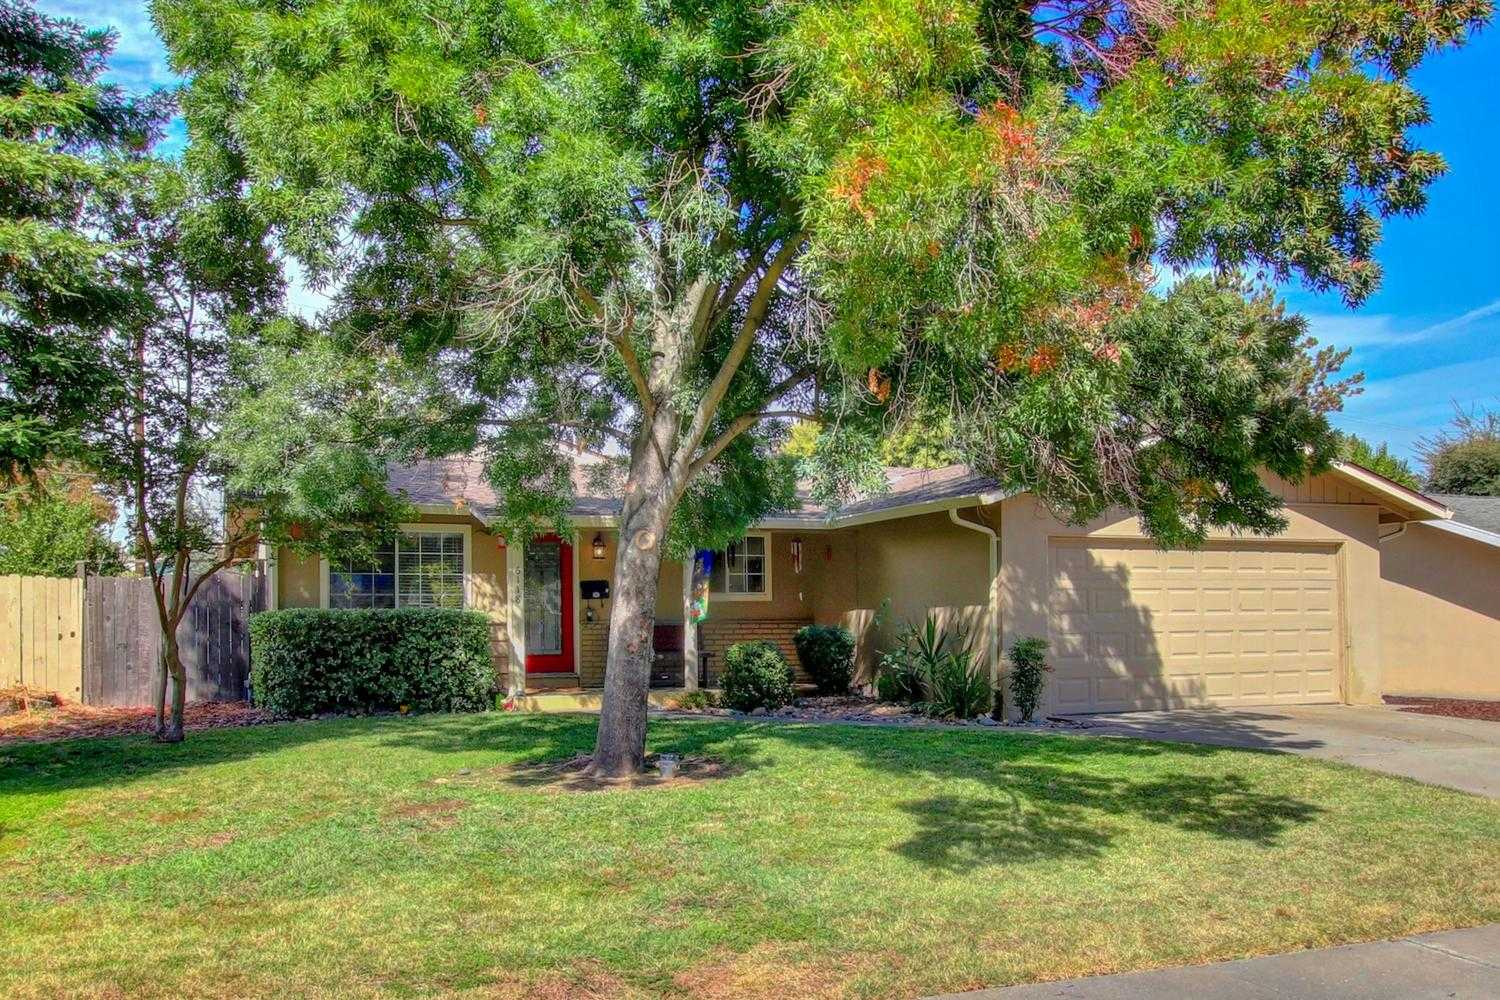 $324,000 - 3Br/2Ba -  for Sale in Citrus Heights